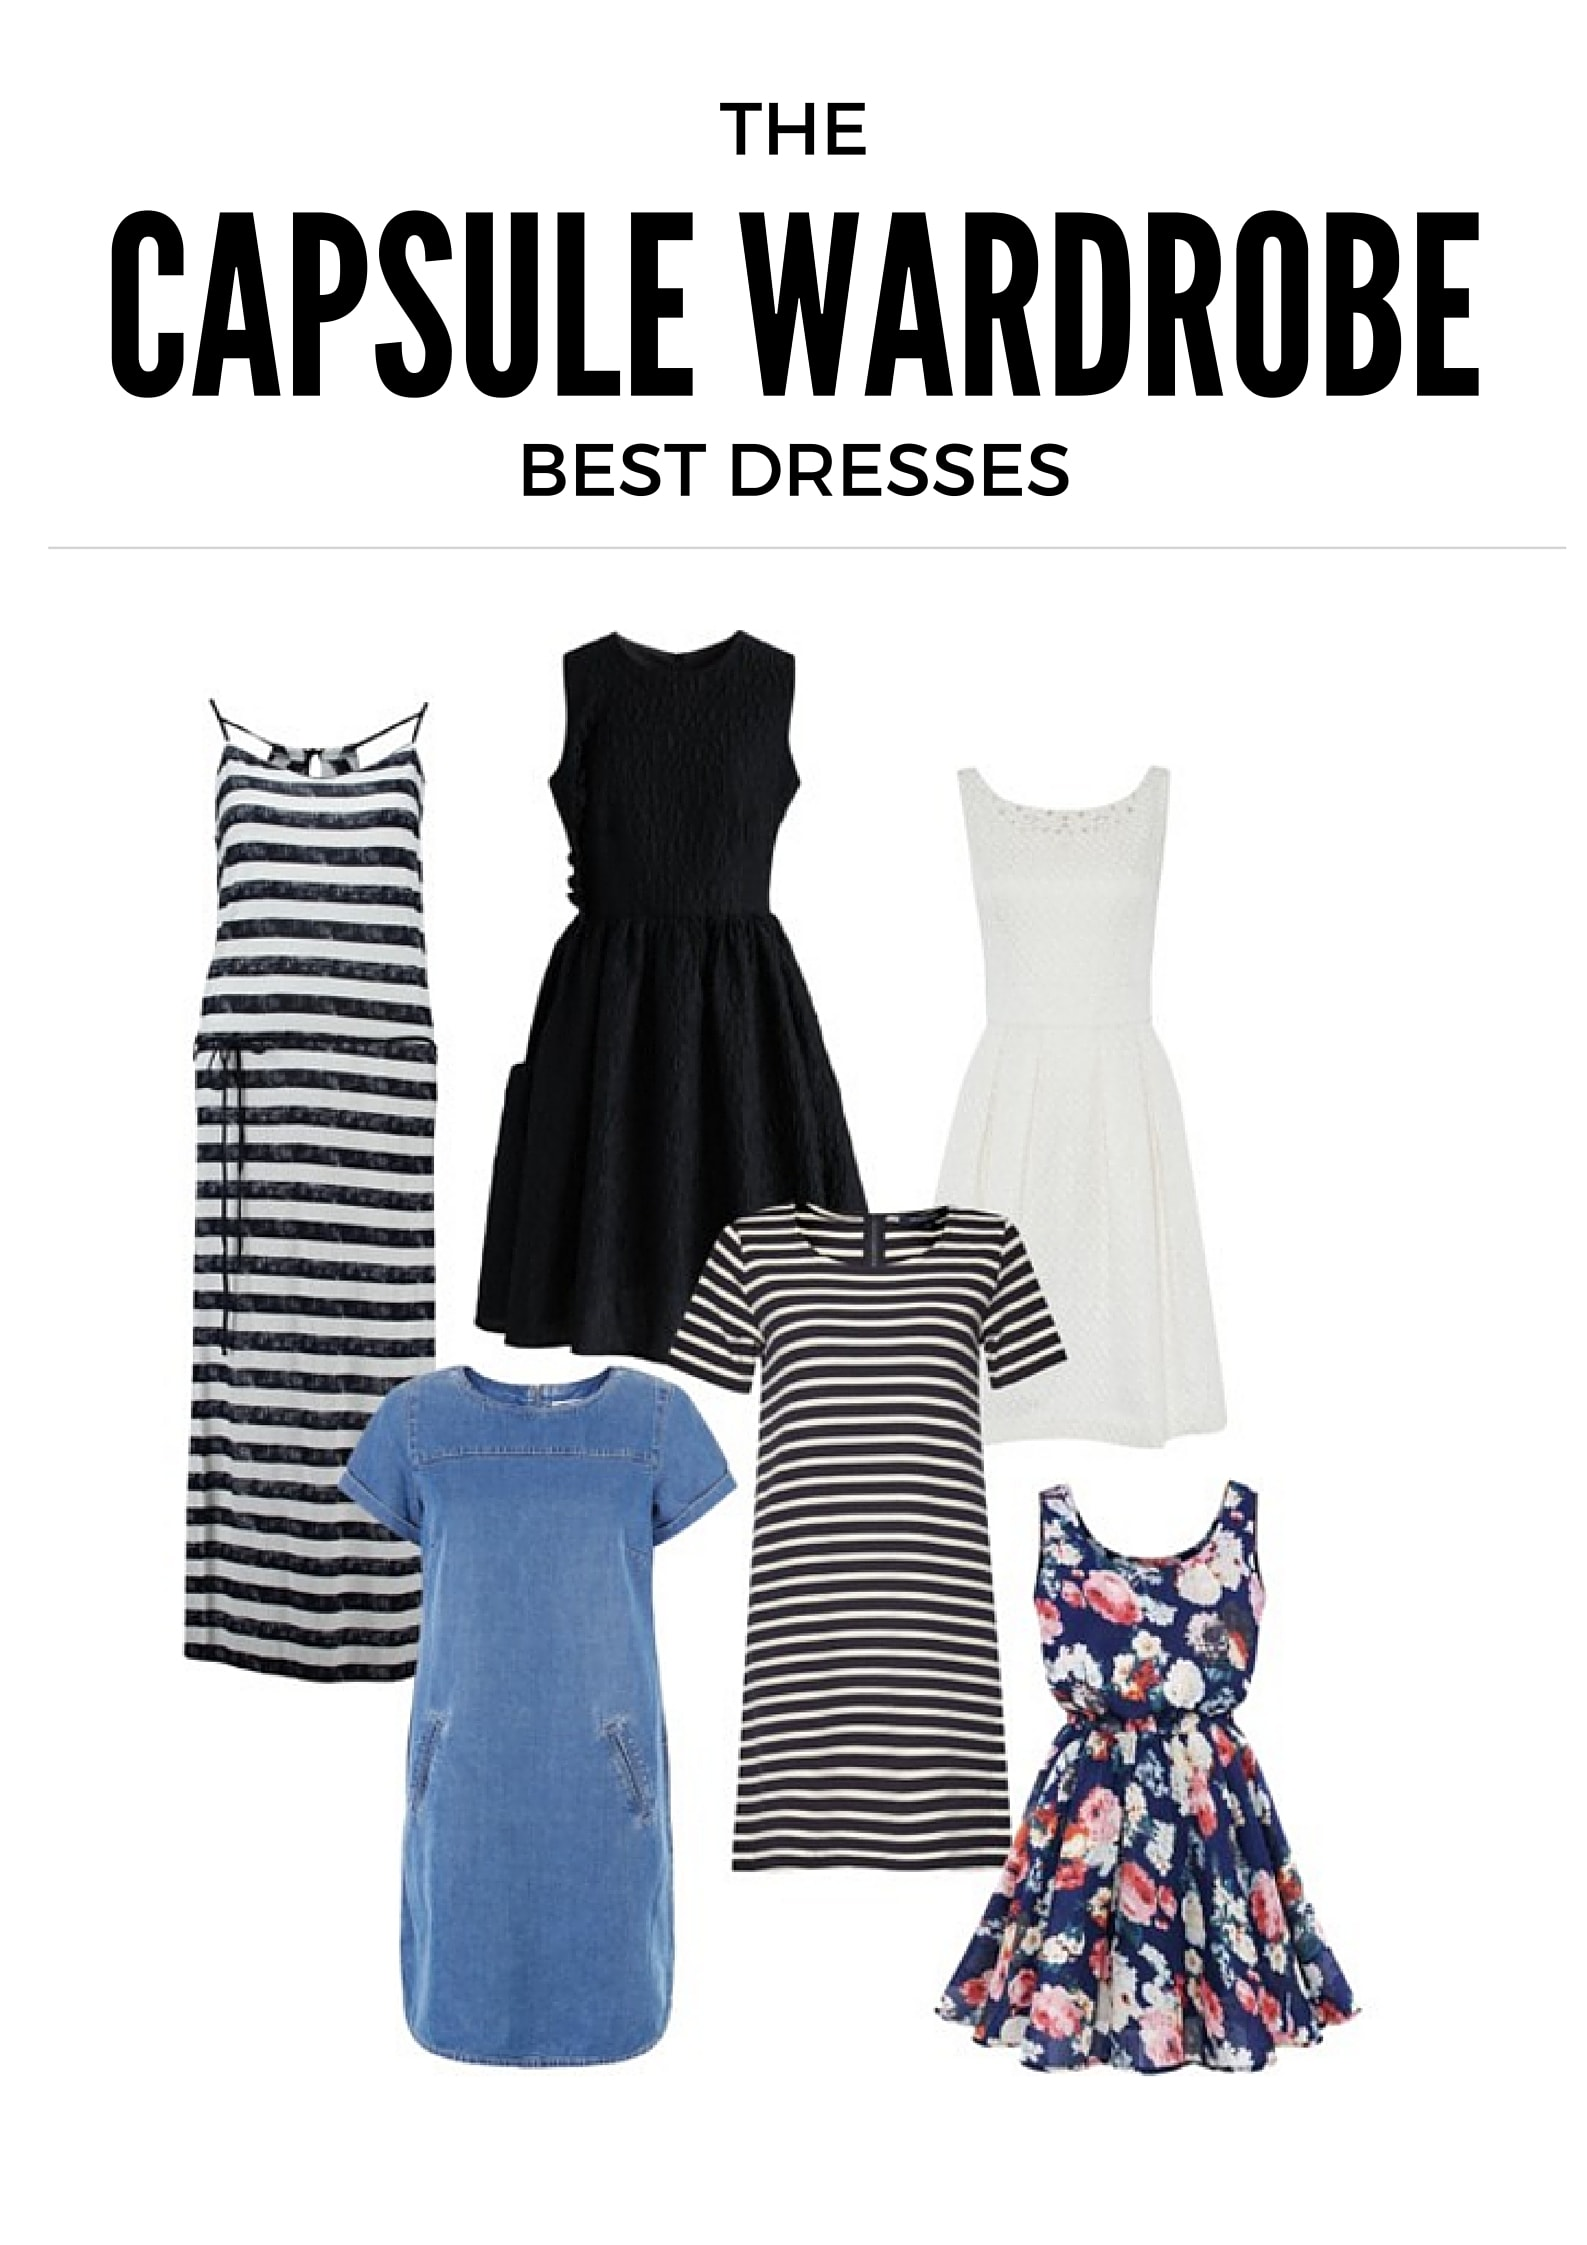 Best Capsule Wardrobe Basics Dresses Under $50 from MomAdvice.com